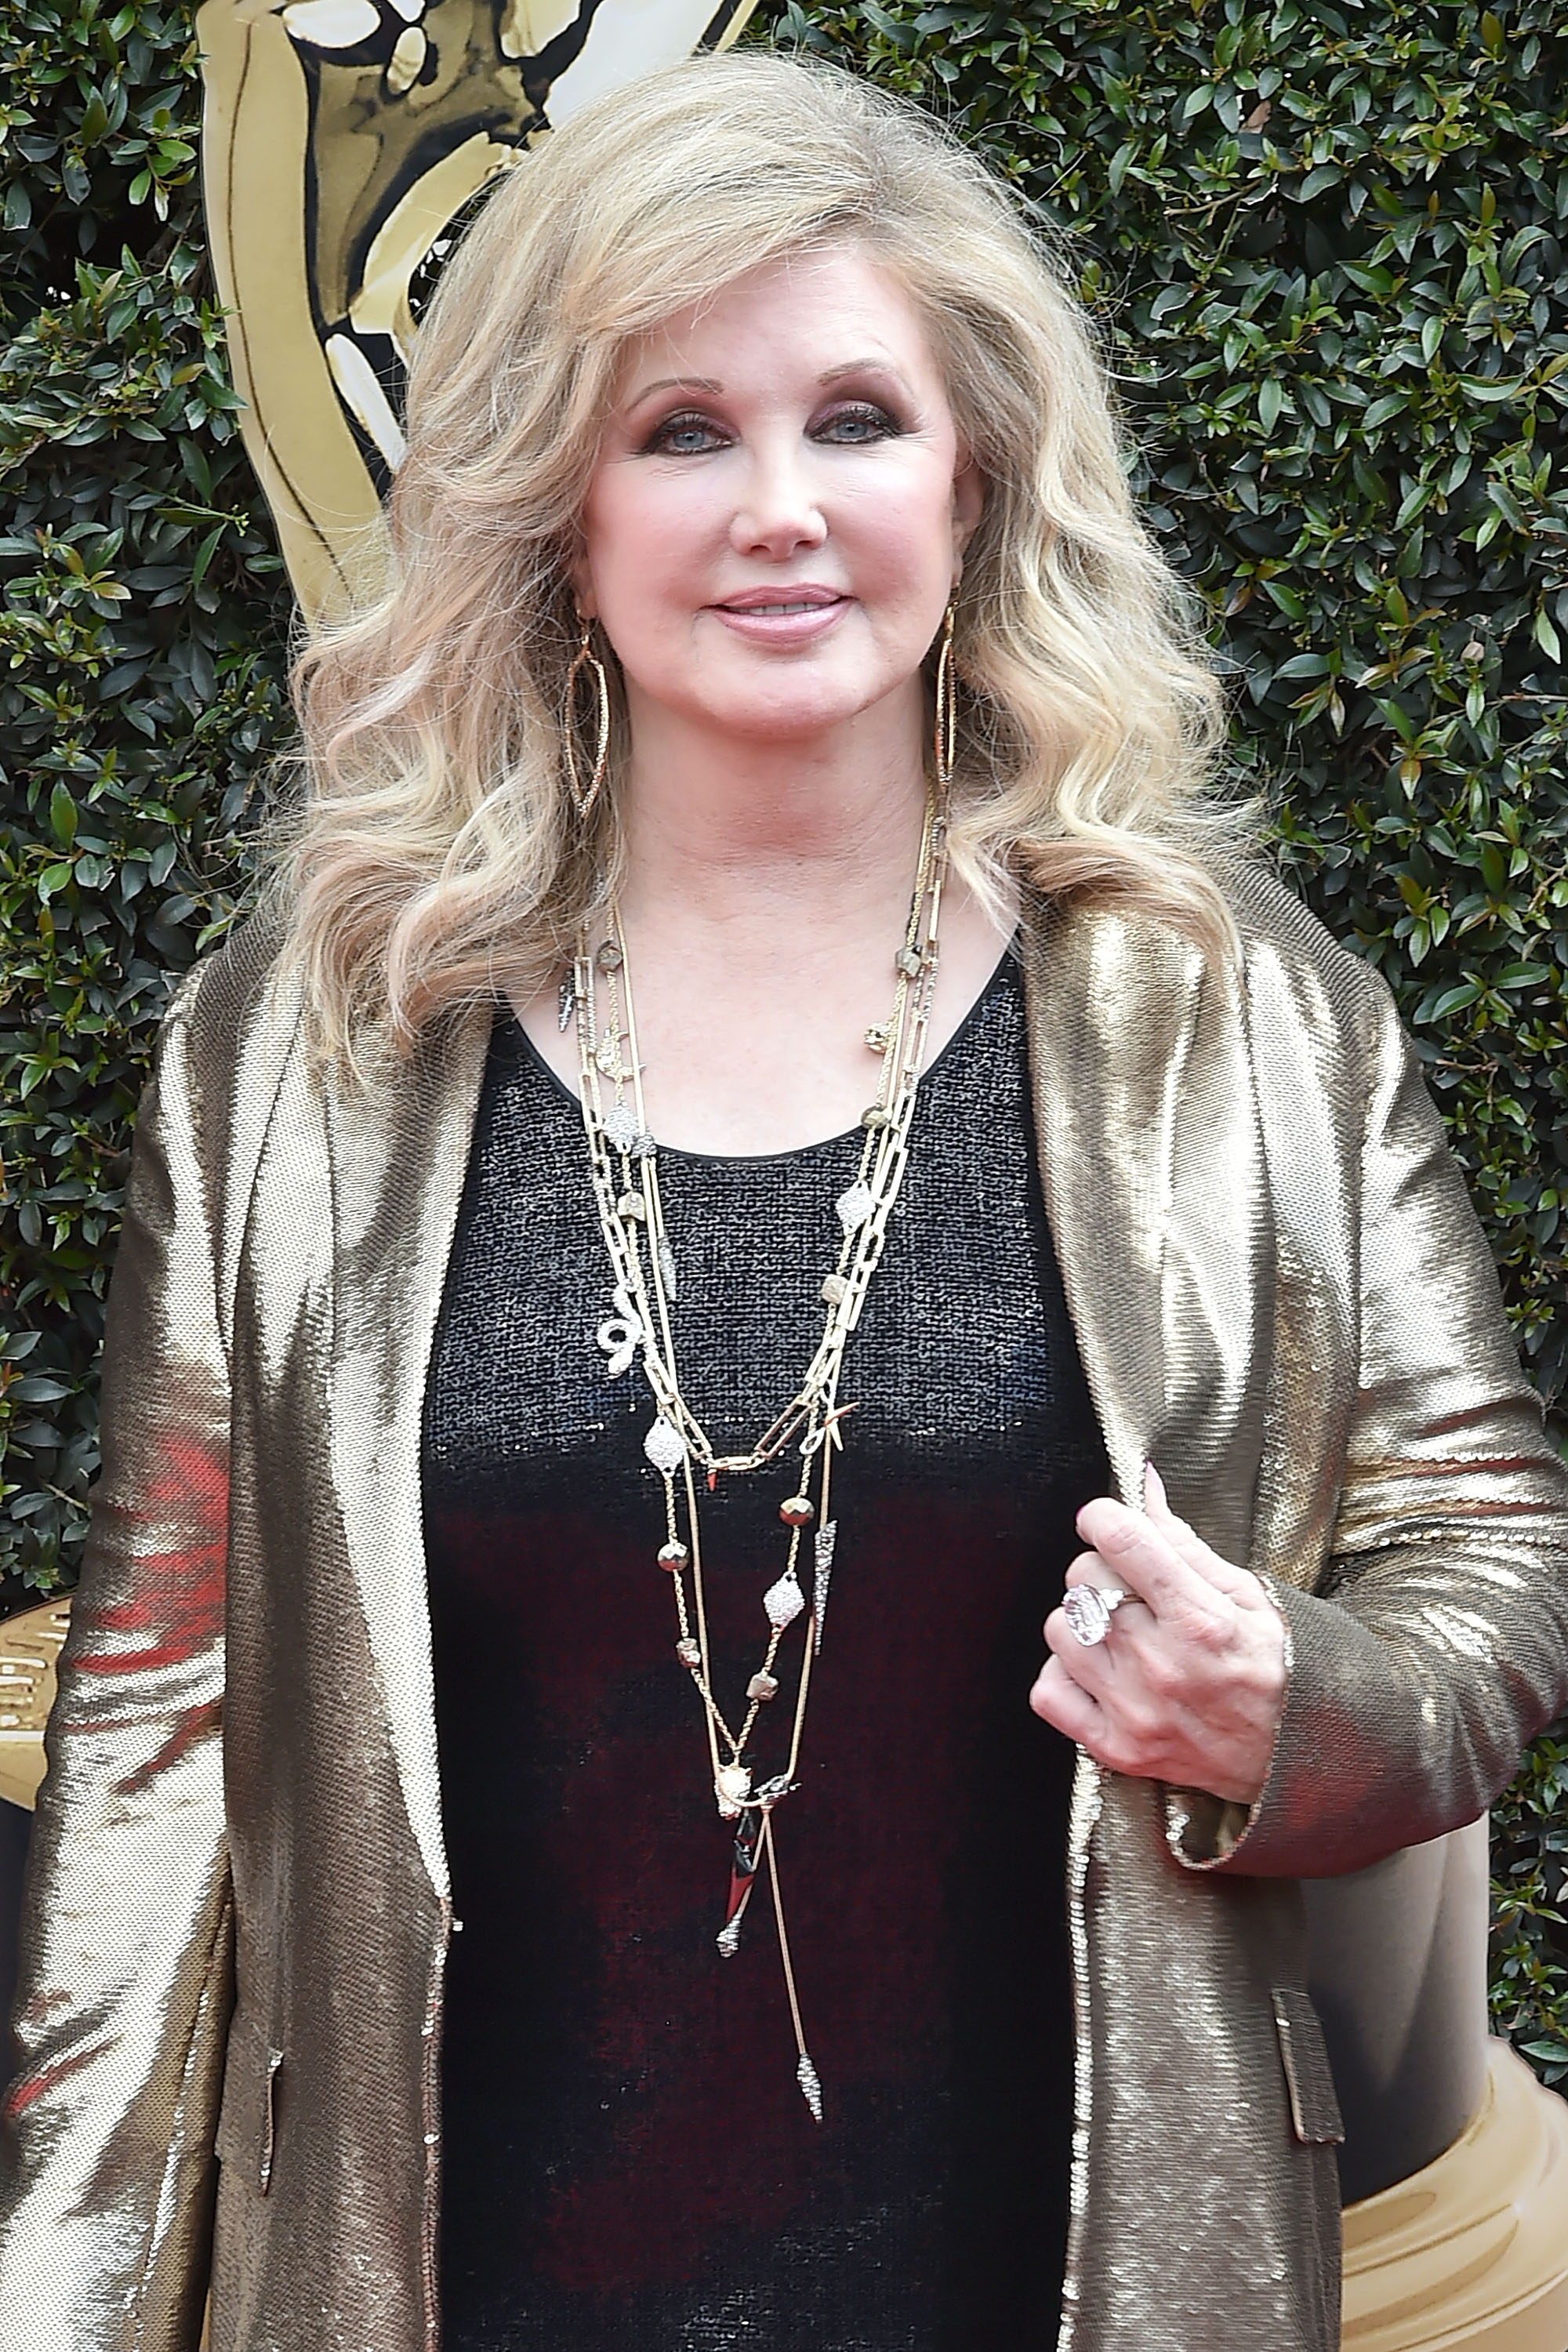 Morgan Fairchild attends the 2018 Daytime Emmy Awards Arrivals at Pasadena Civic Auditorium on April 29, 2018 | Photo: GettyImages